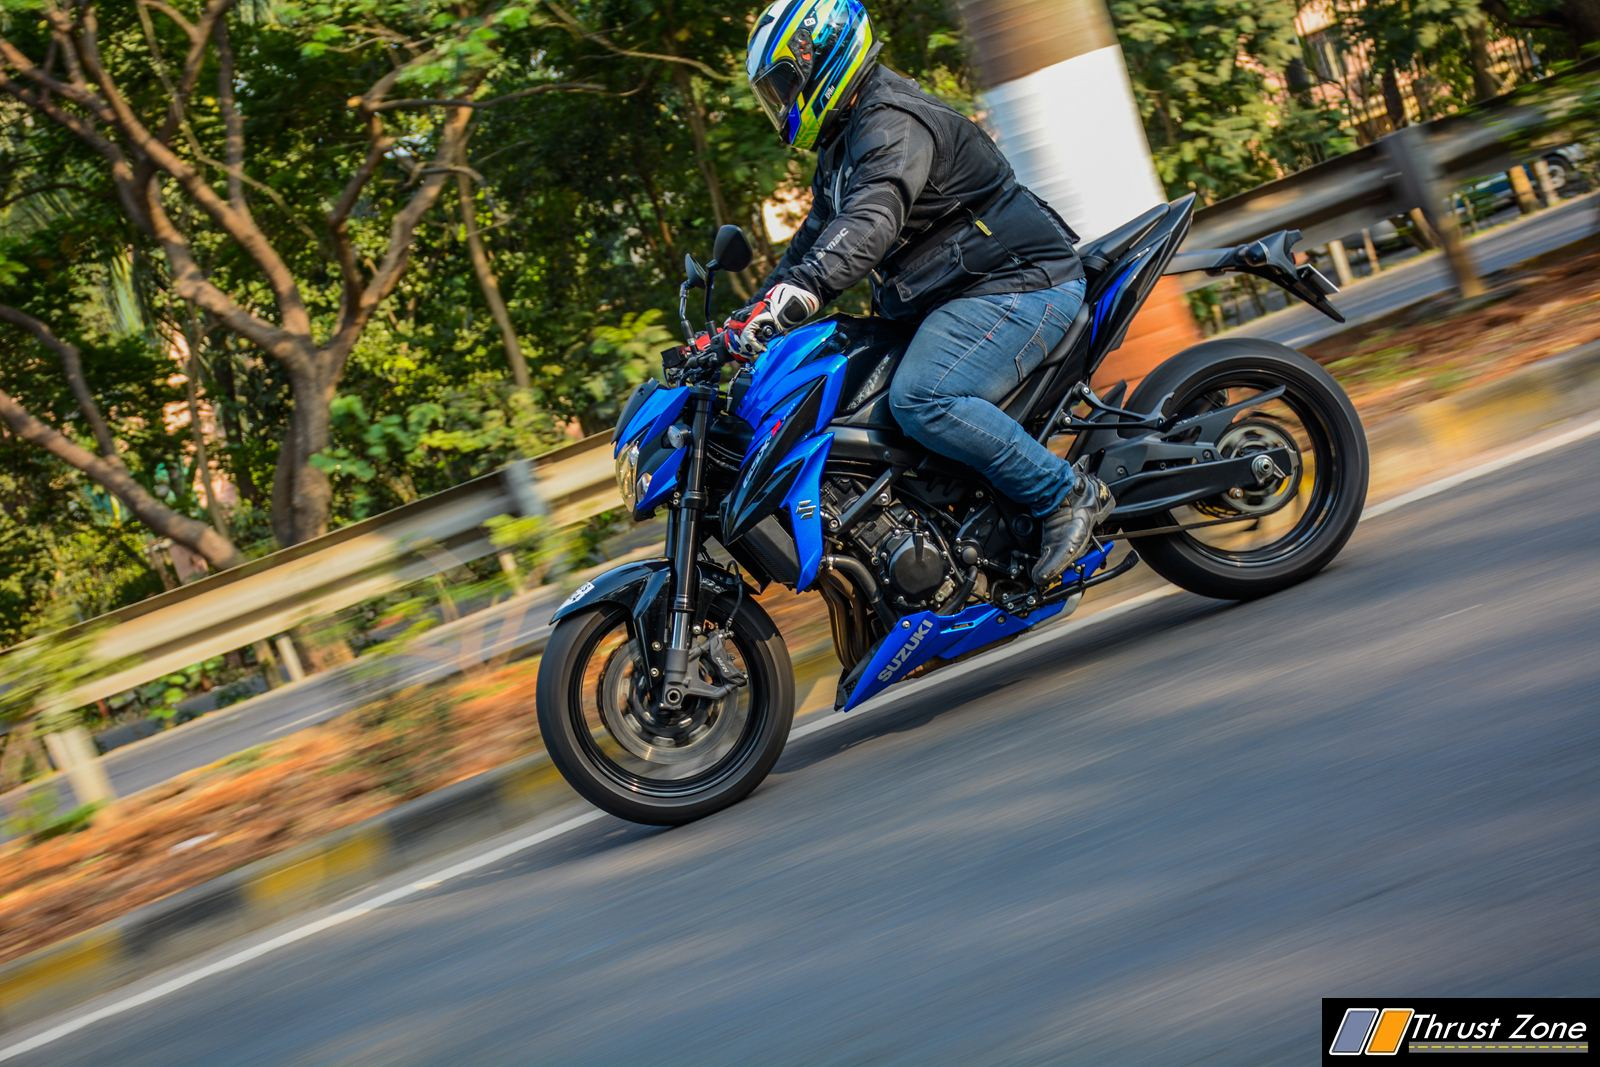 2018-Suzuki-GSX-750-INDIA-Review-5